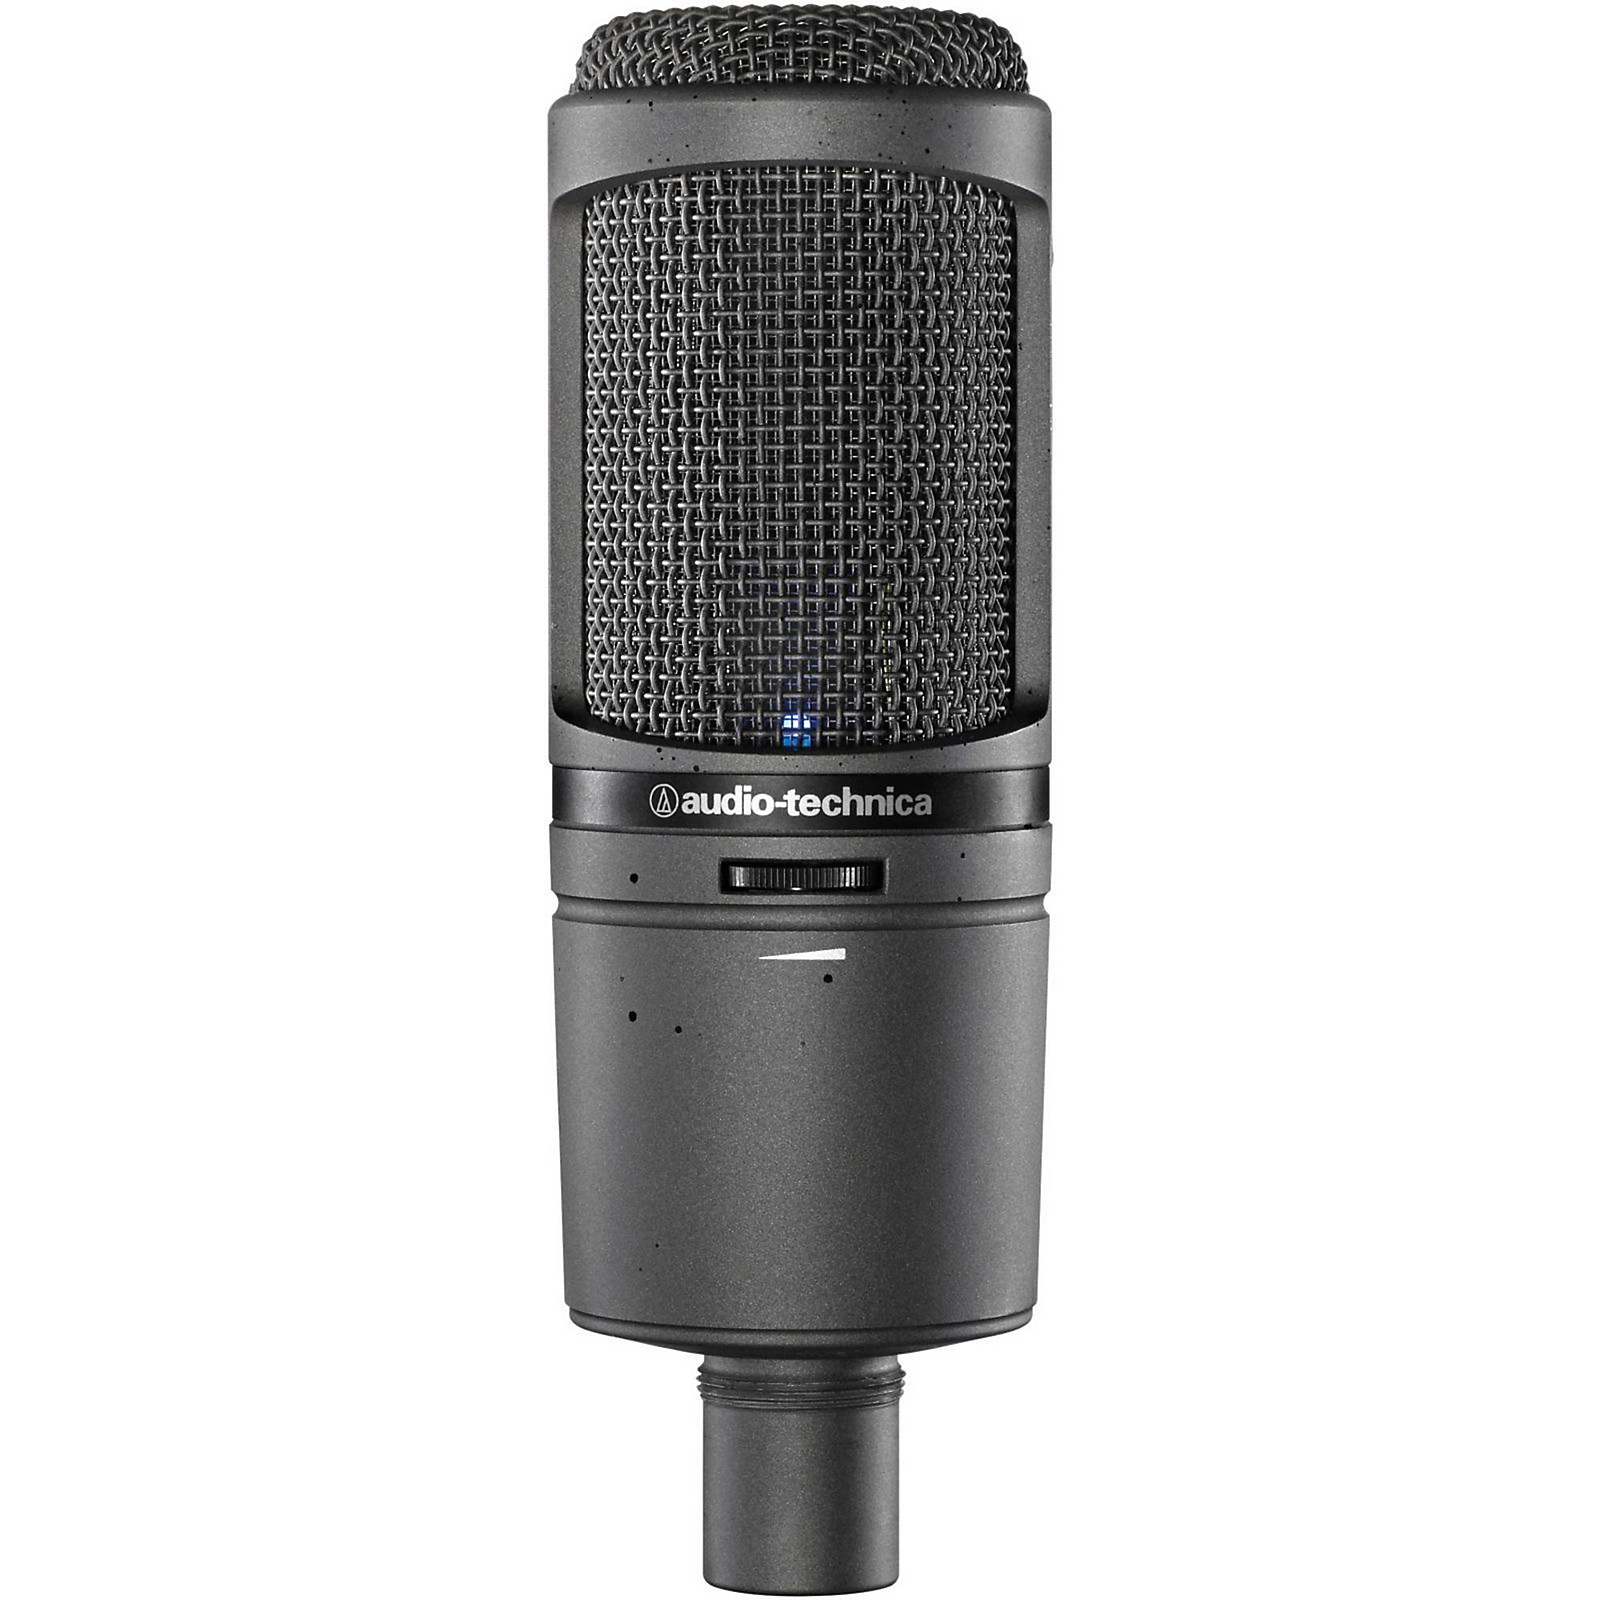 Audio-Technica AT2020USBi Cardioid Condenser Microphone for iOS, Mac, and PC